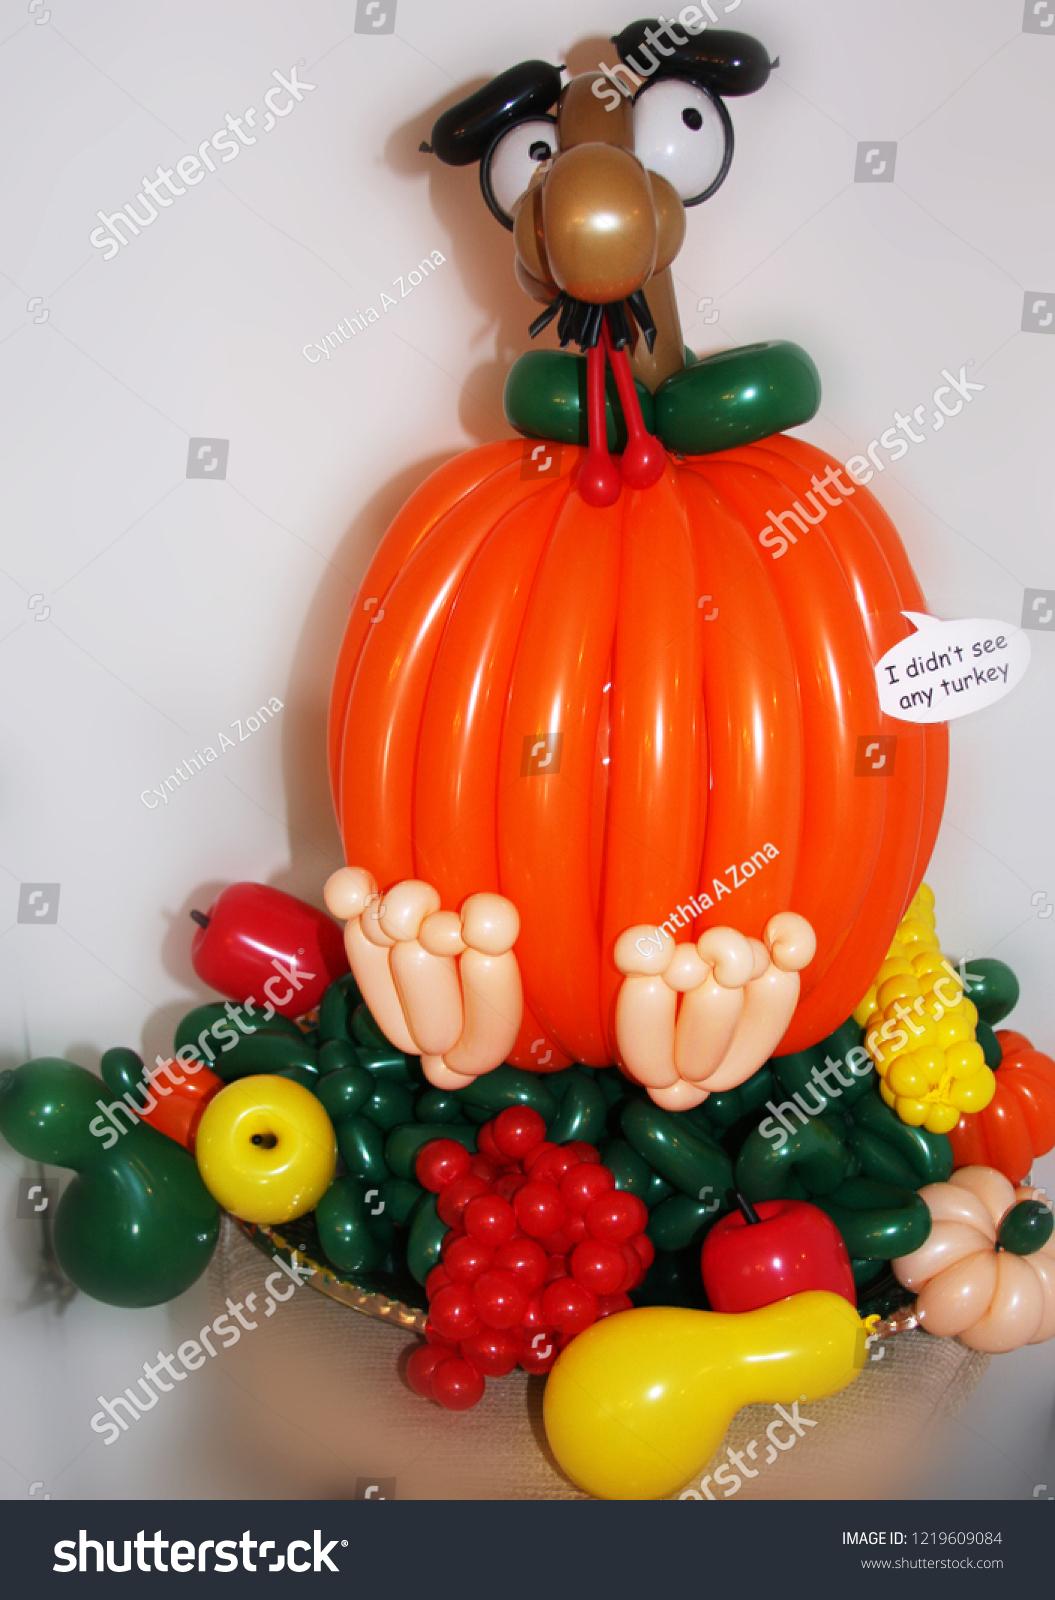 cc8ff14caff43 Funny balloon turkey in disguise on tray of food for Thanksgiving display